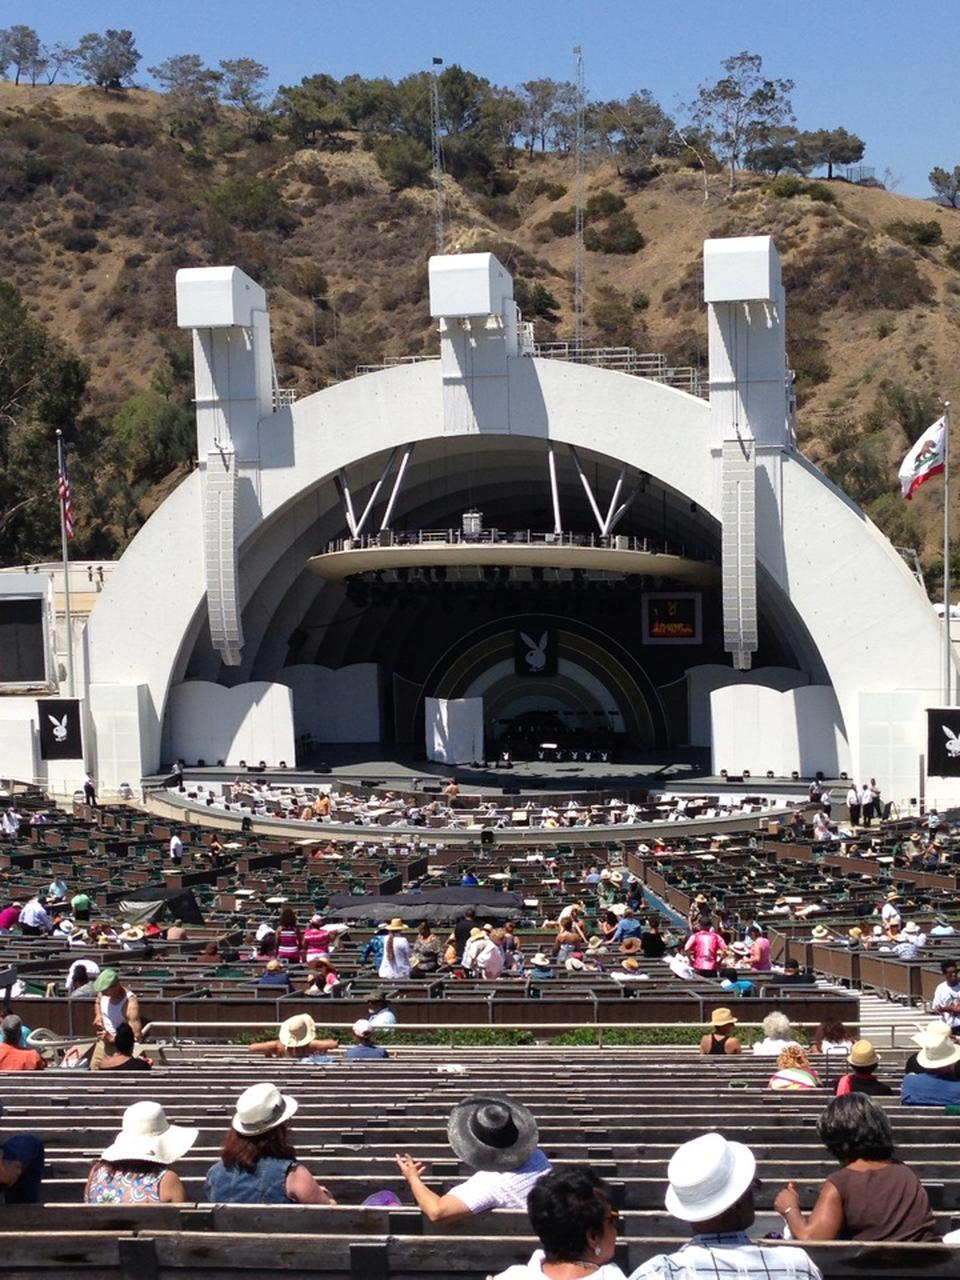 Best Buy Hollywood >> Hollywood Bowl Section G2 - RateYourSeats.com